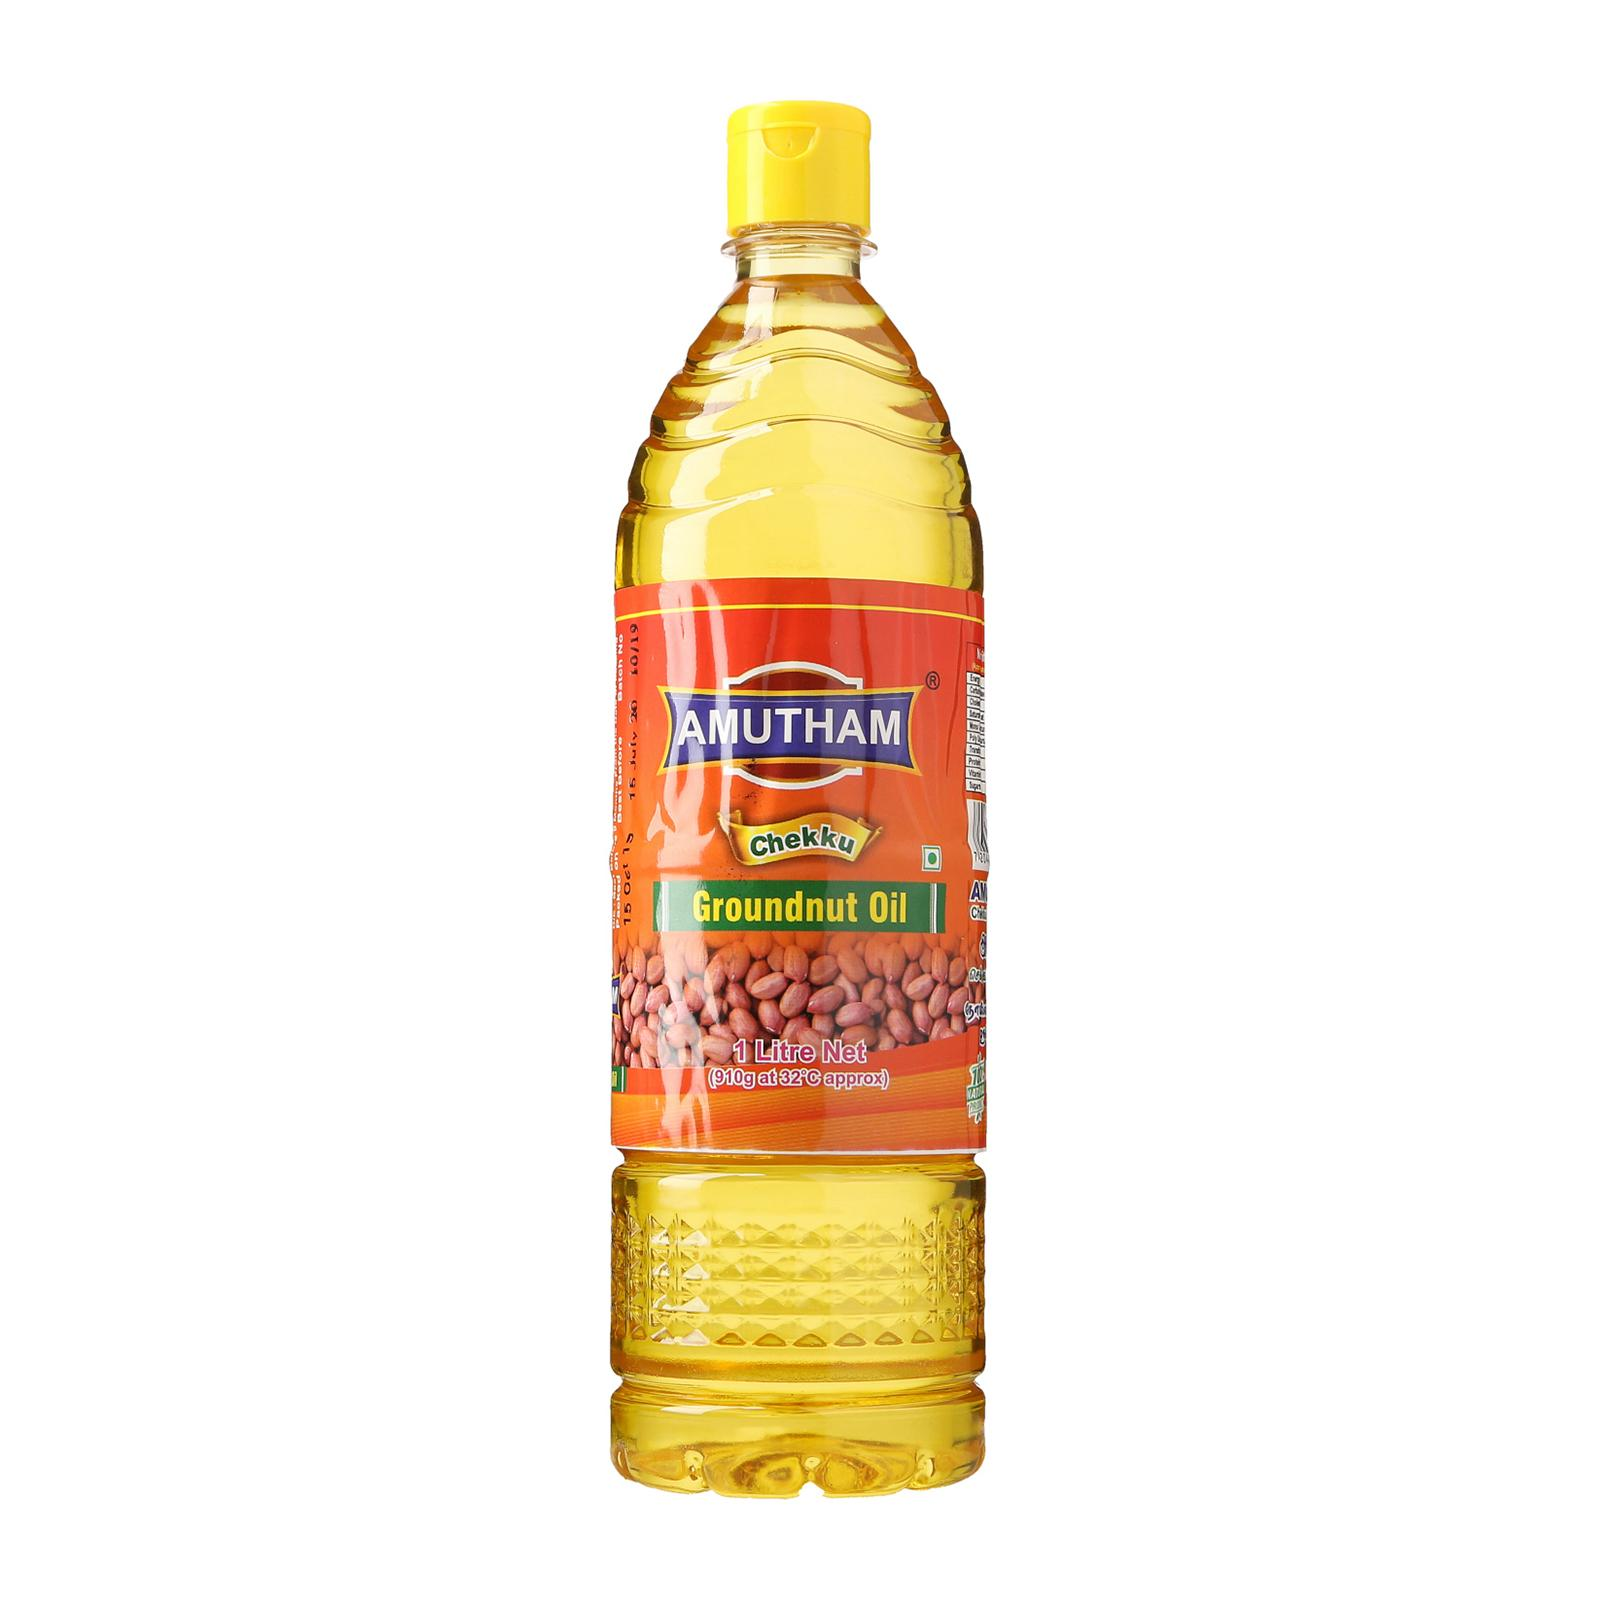 Amutham Chekku Cold Pressed Groundnut Oil